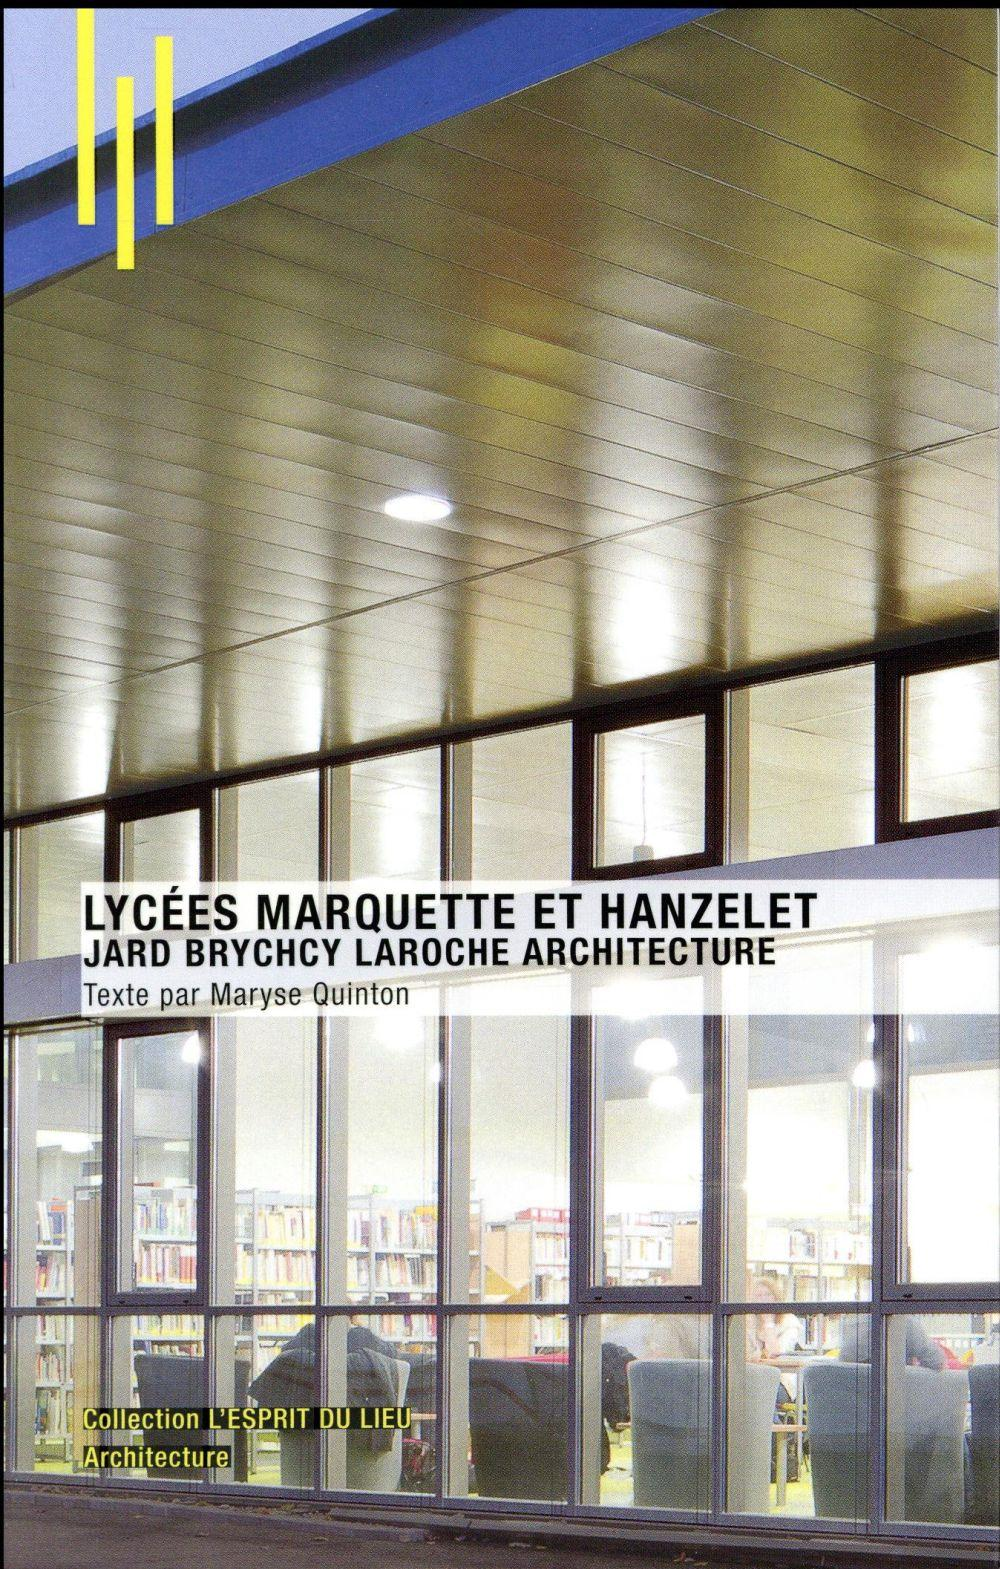 Lycées Marquette et Hanzelet ; Jard Brychcy Laroche architecture  - Maryse Quinton